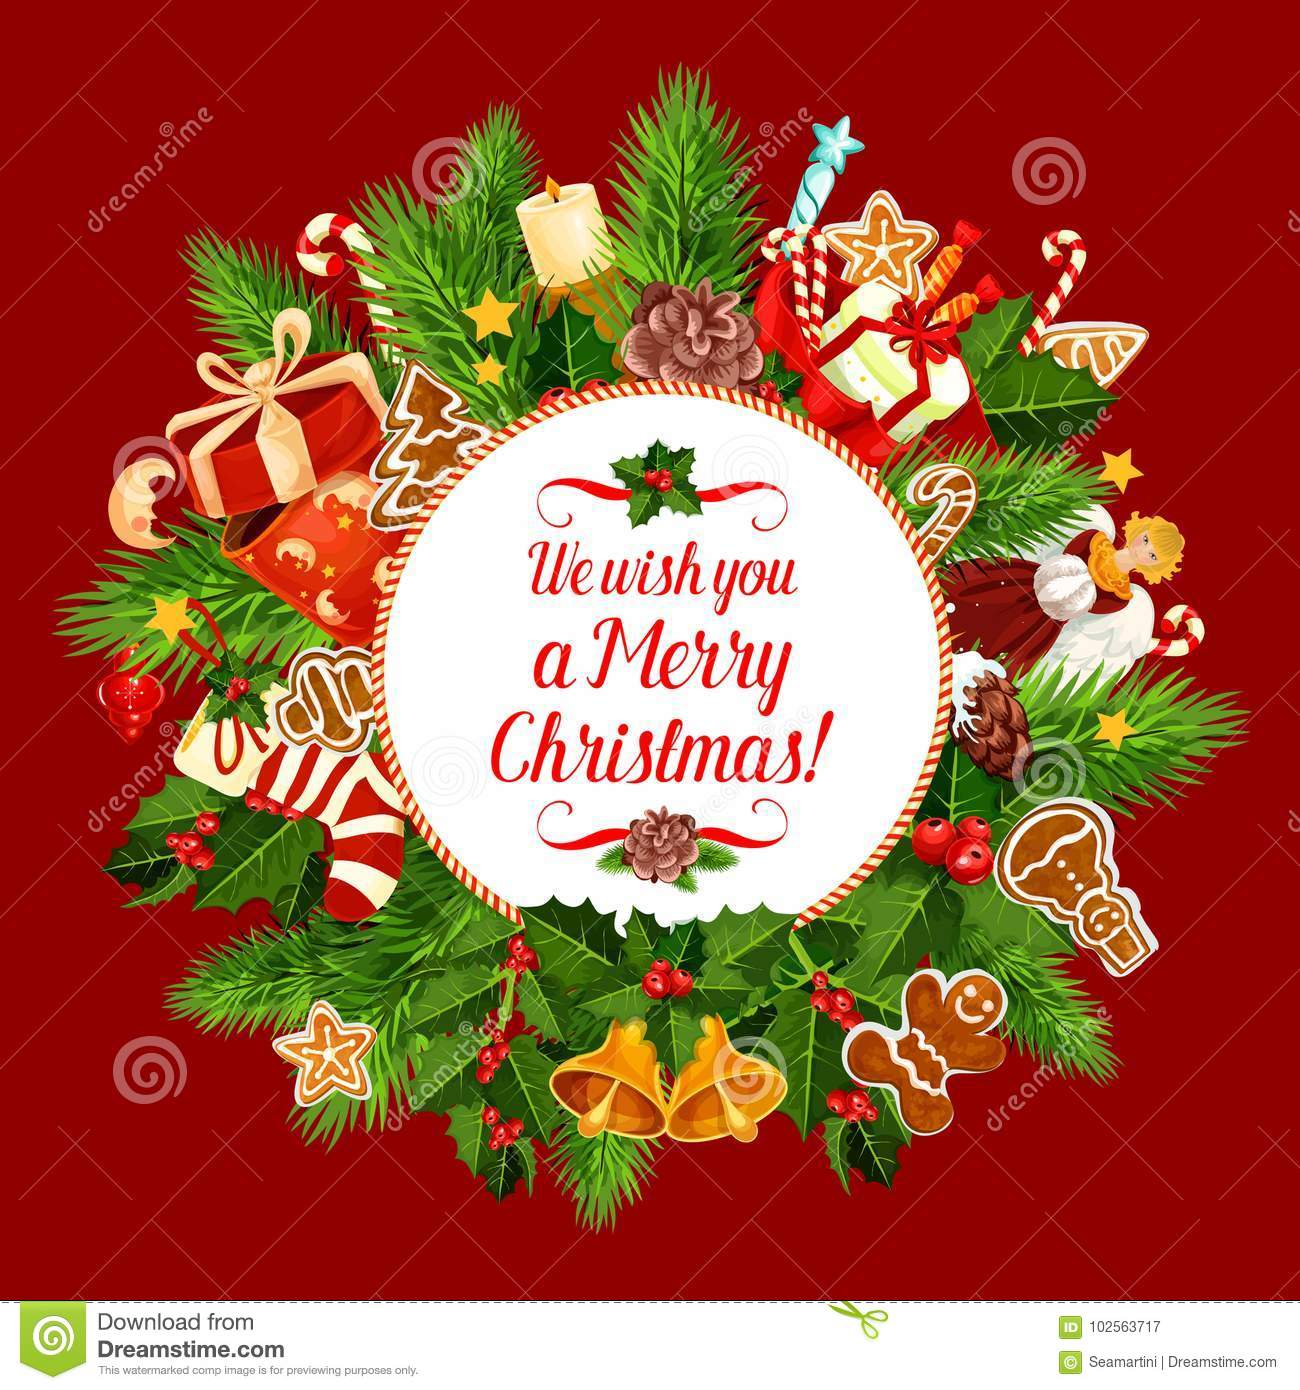 Merry Christmas Holiday Wish Vector Greeting Card Stock Vector